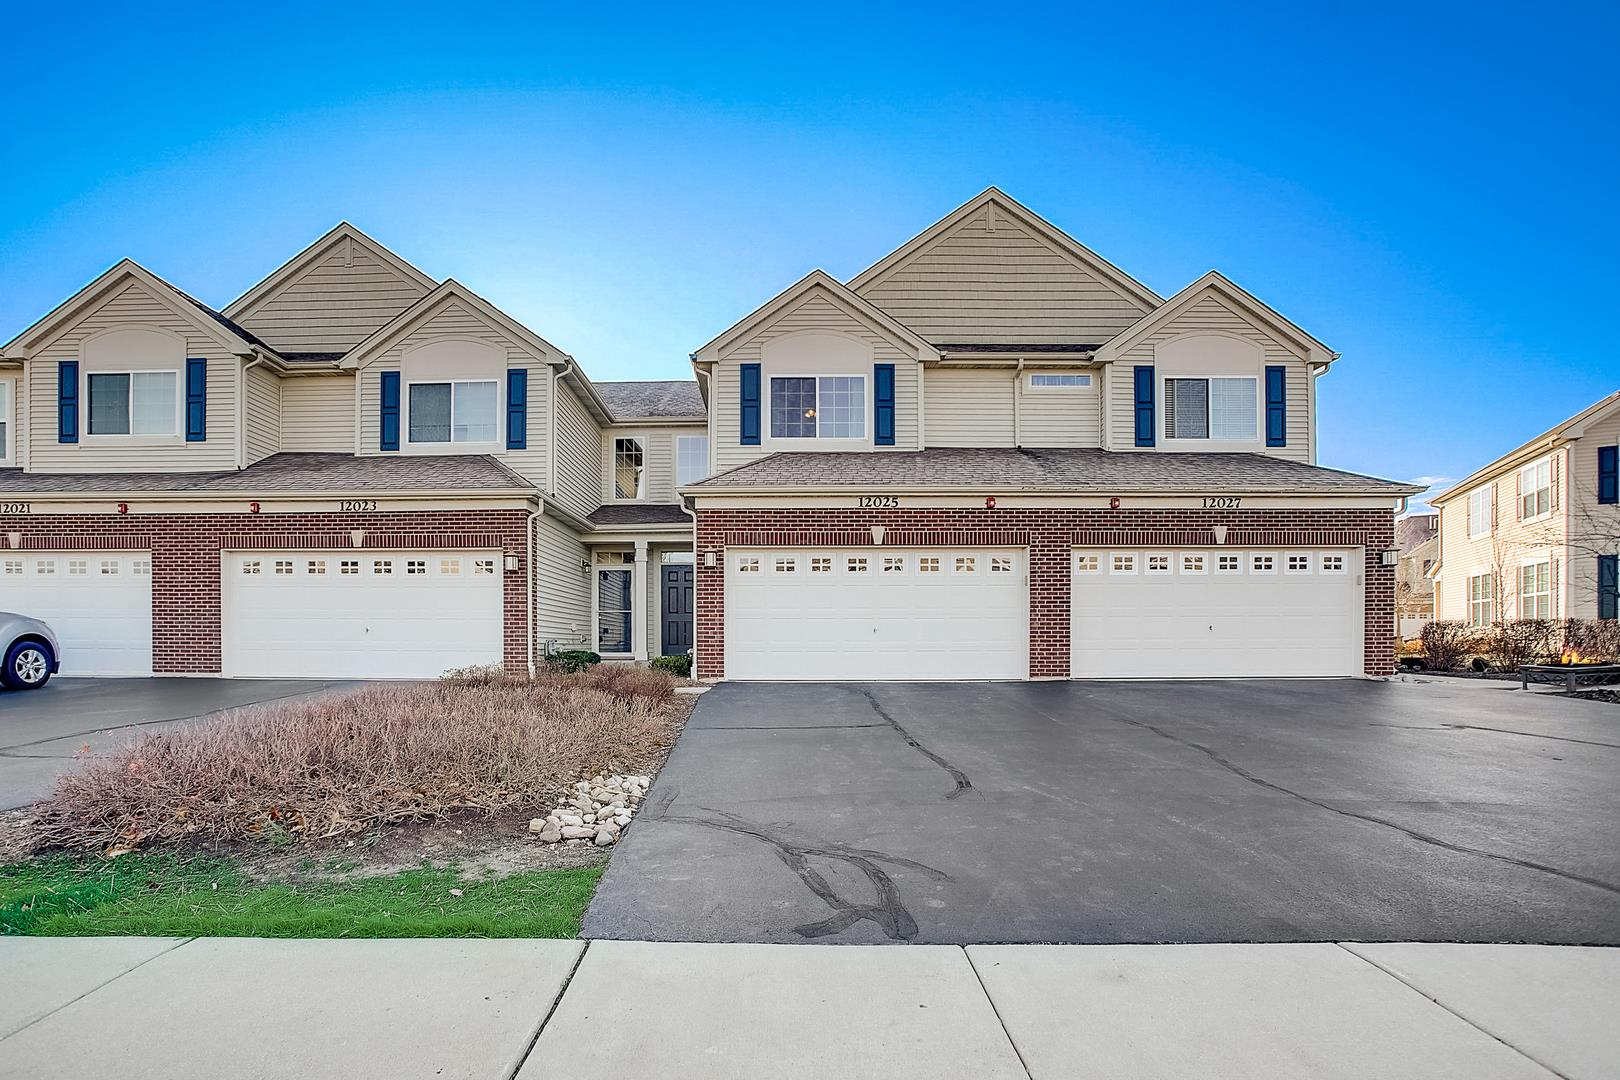 12025 Brunschon Lane, Huntley, IL 60142 - #: 10927033